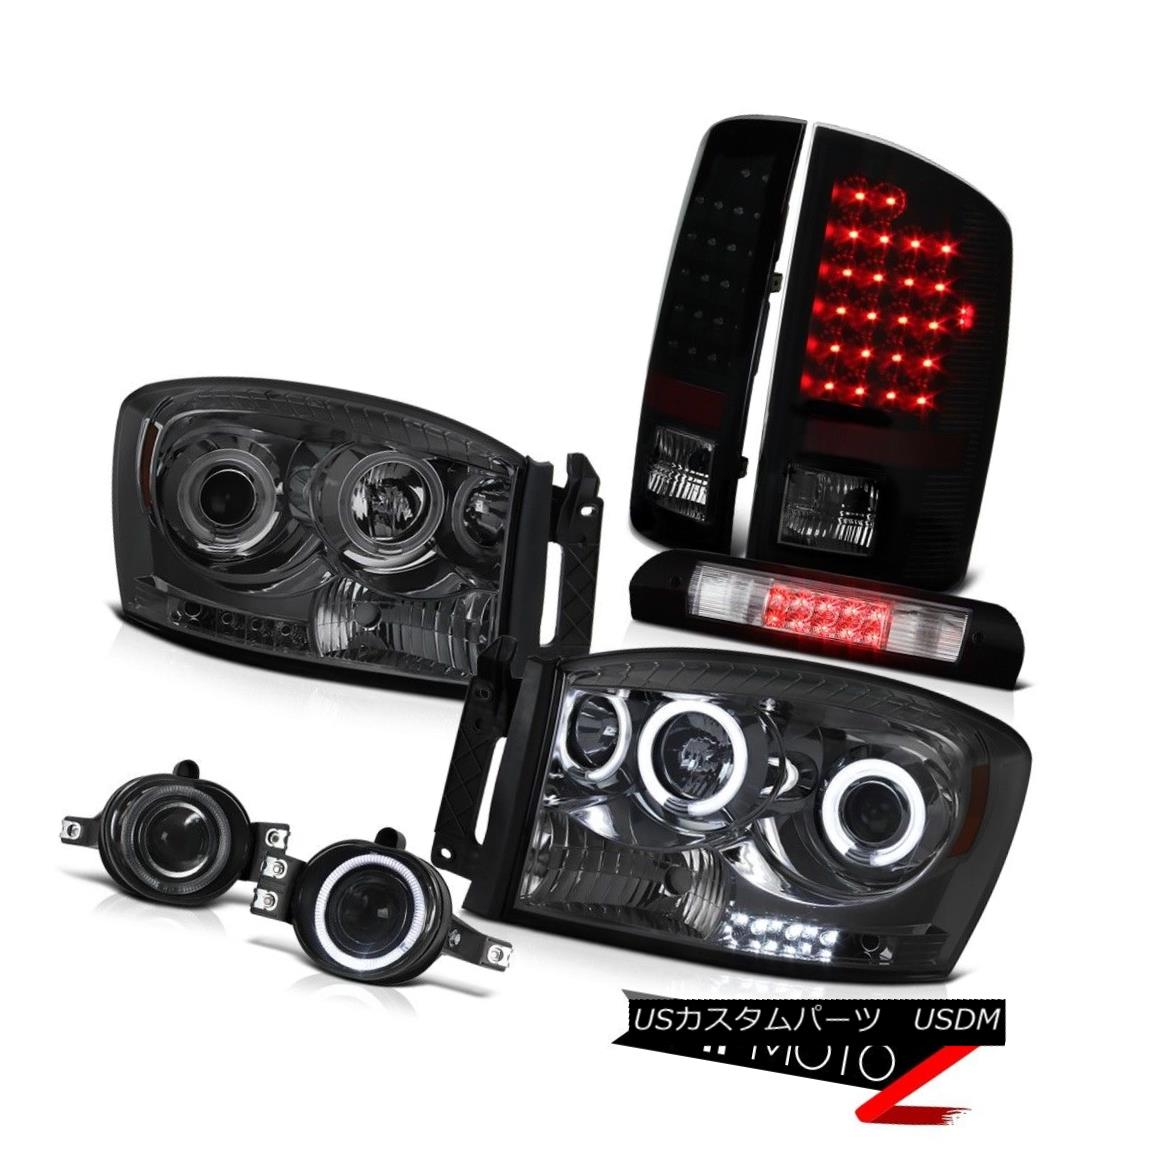 ヘッドライト 2007-2008 Dodge Ram C.C.F.L Smoke Headlights Rear Brake Taillights Fog Cargo LED 2007-2008 Dodge Ram C.C.F.Lスモークヘッドライトリアブレーキ曇り霧カーゴLED